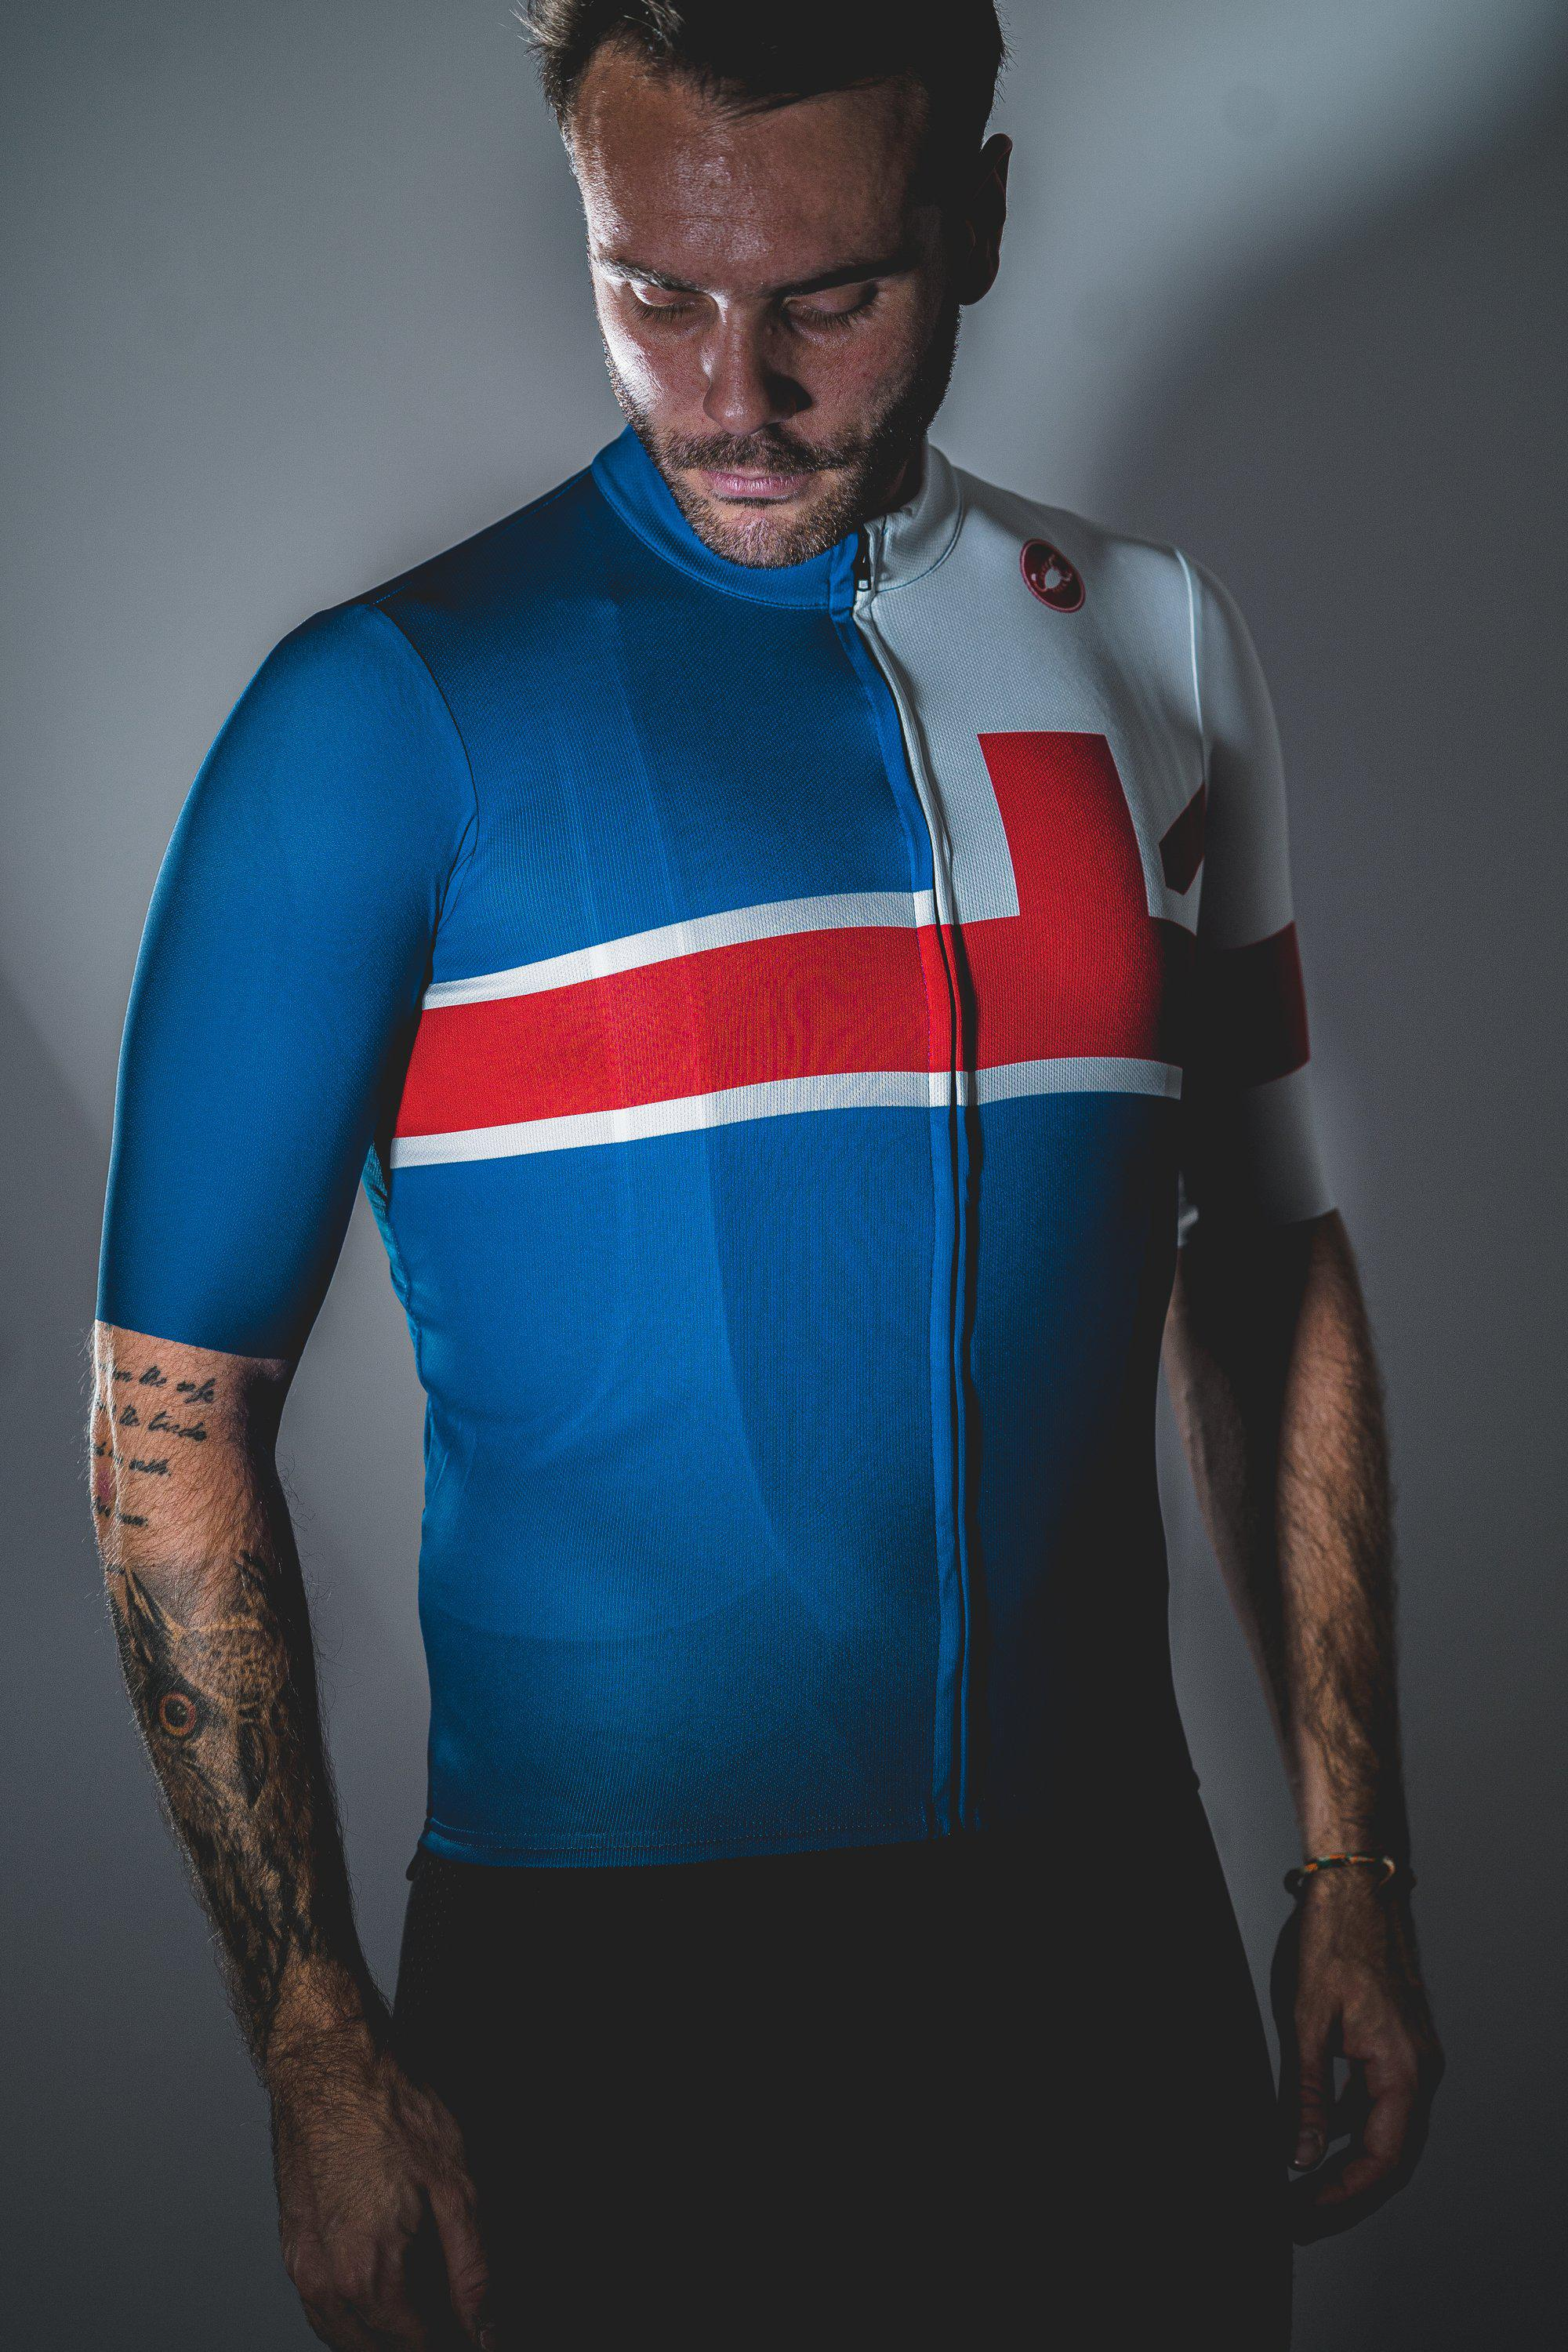 Castelli-Castelli World Champs Squadra Jersey - UK-UK-L-CS4300412A397064-saddleback-elite-performance-cycling